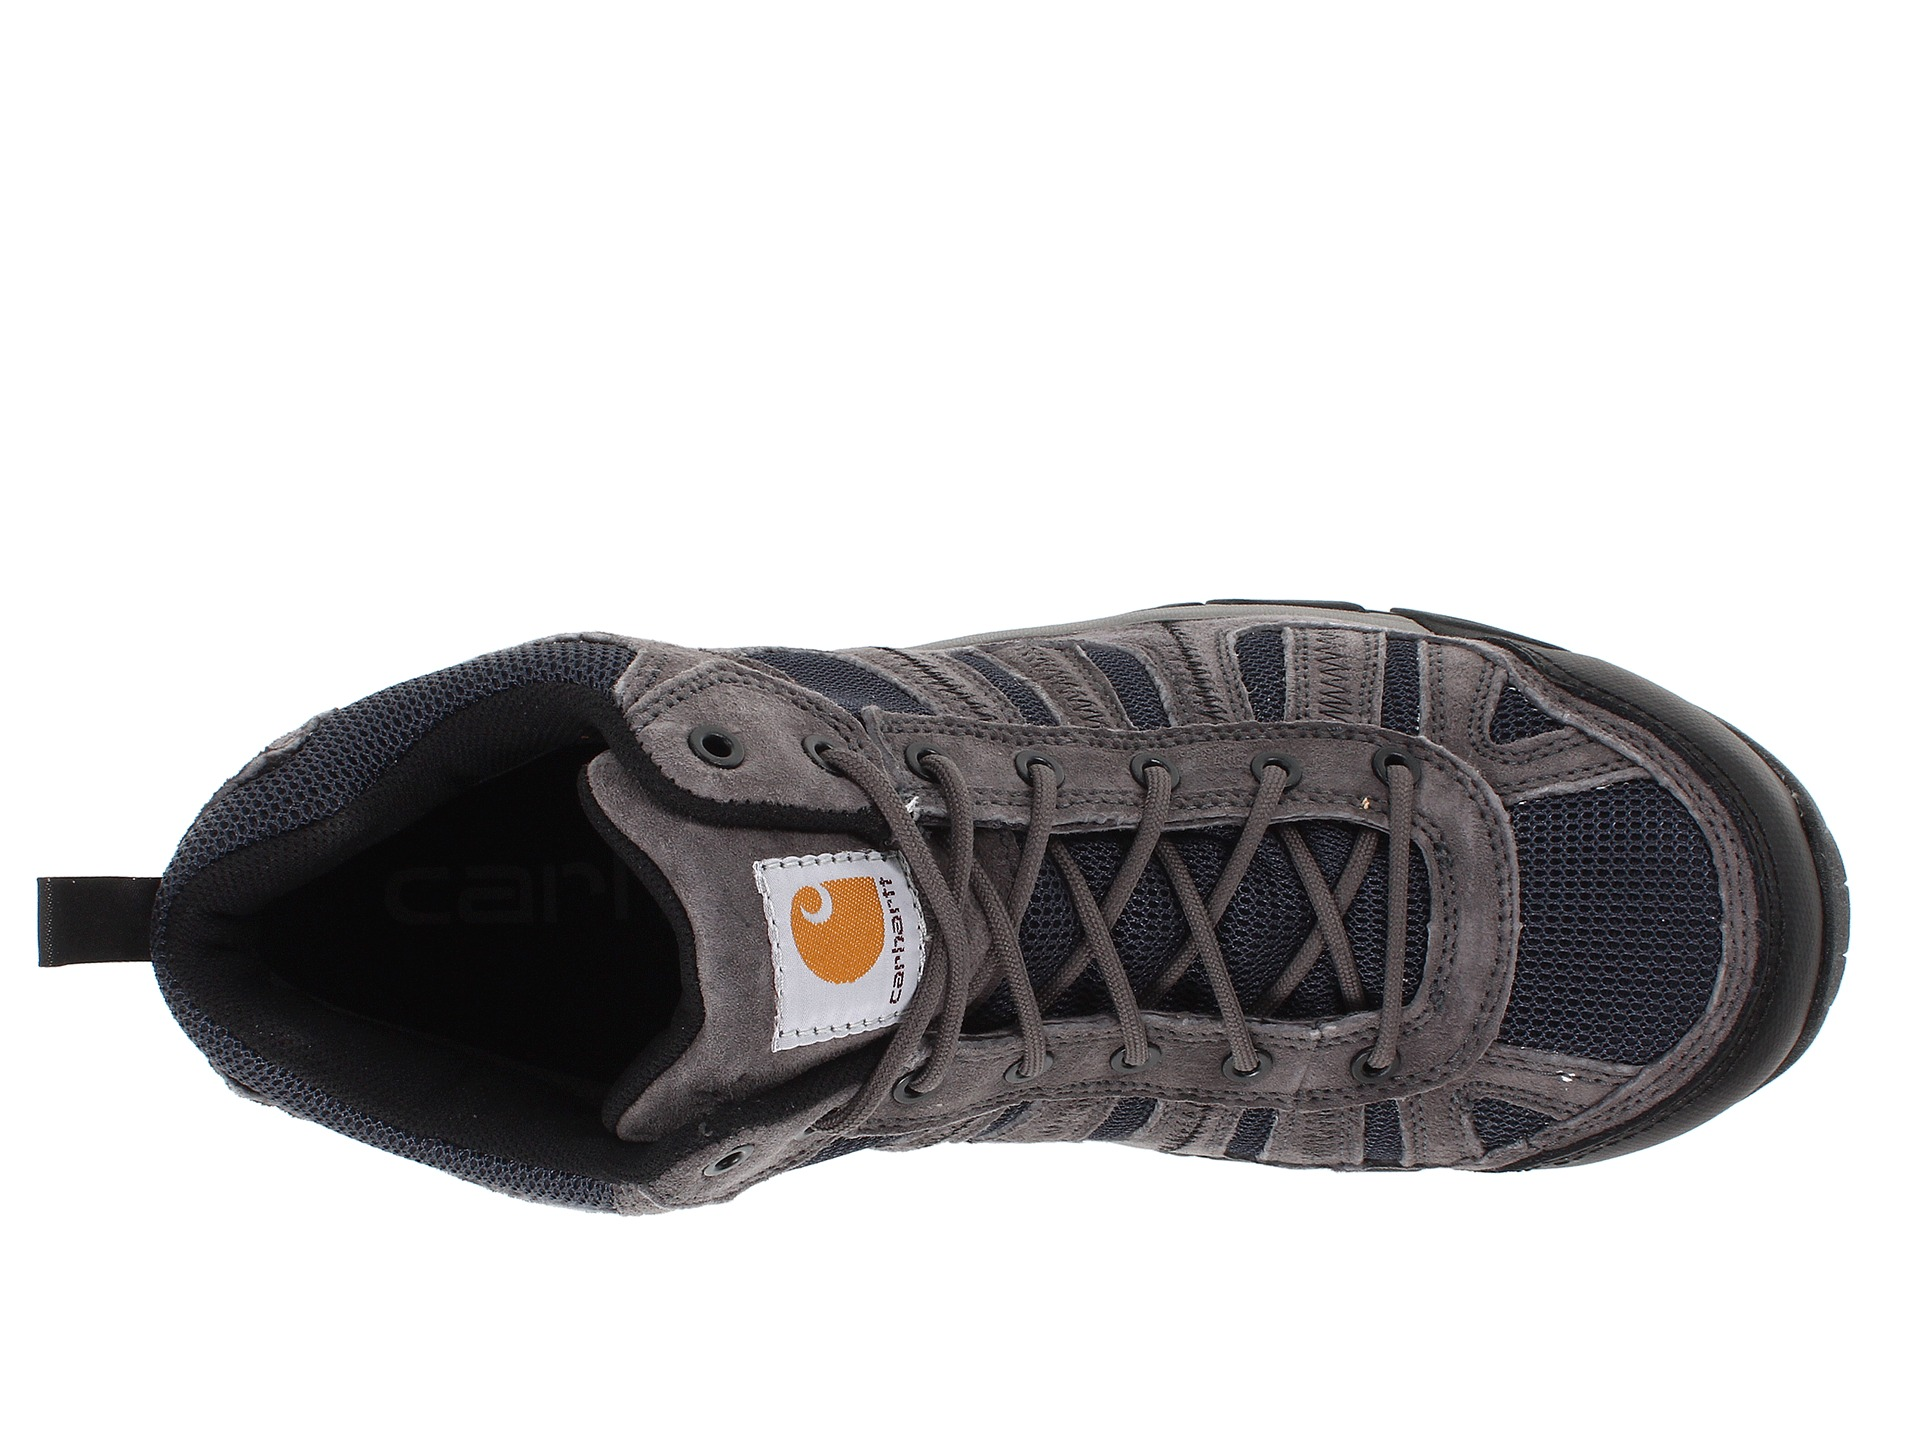 Carhartt Lightweight Waterproof Work Hiker Composite Toe - Zappos ...